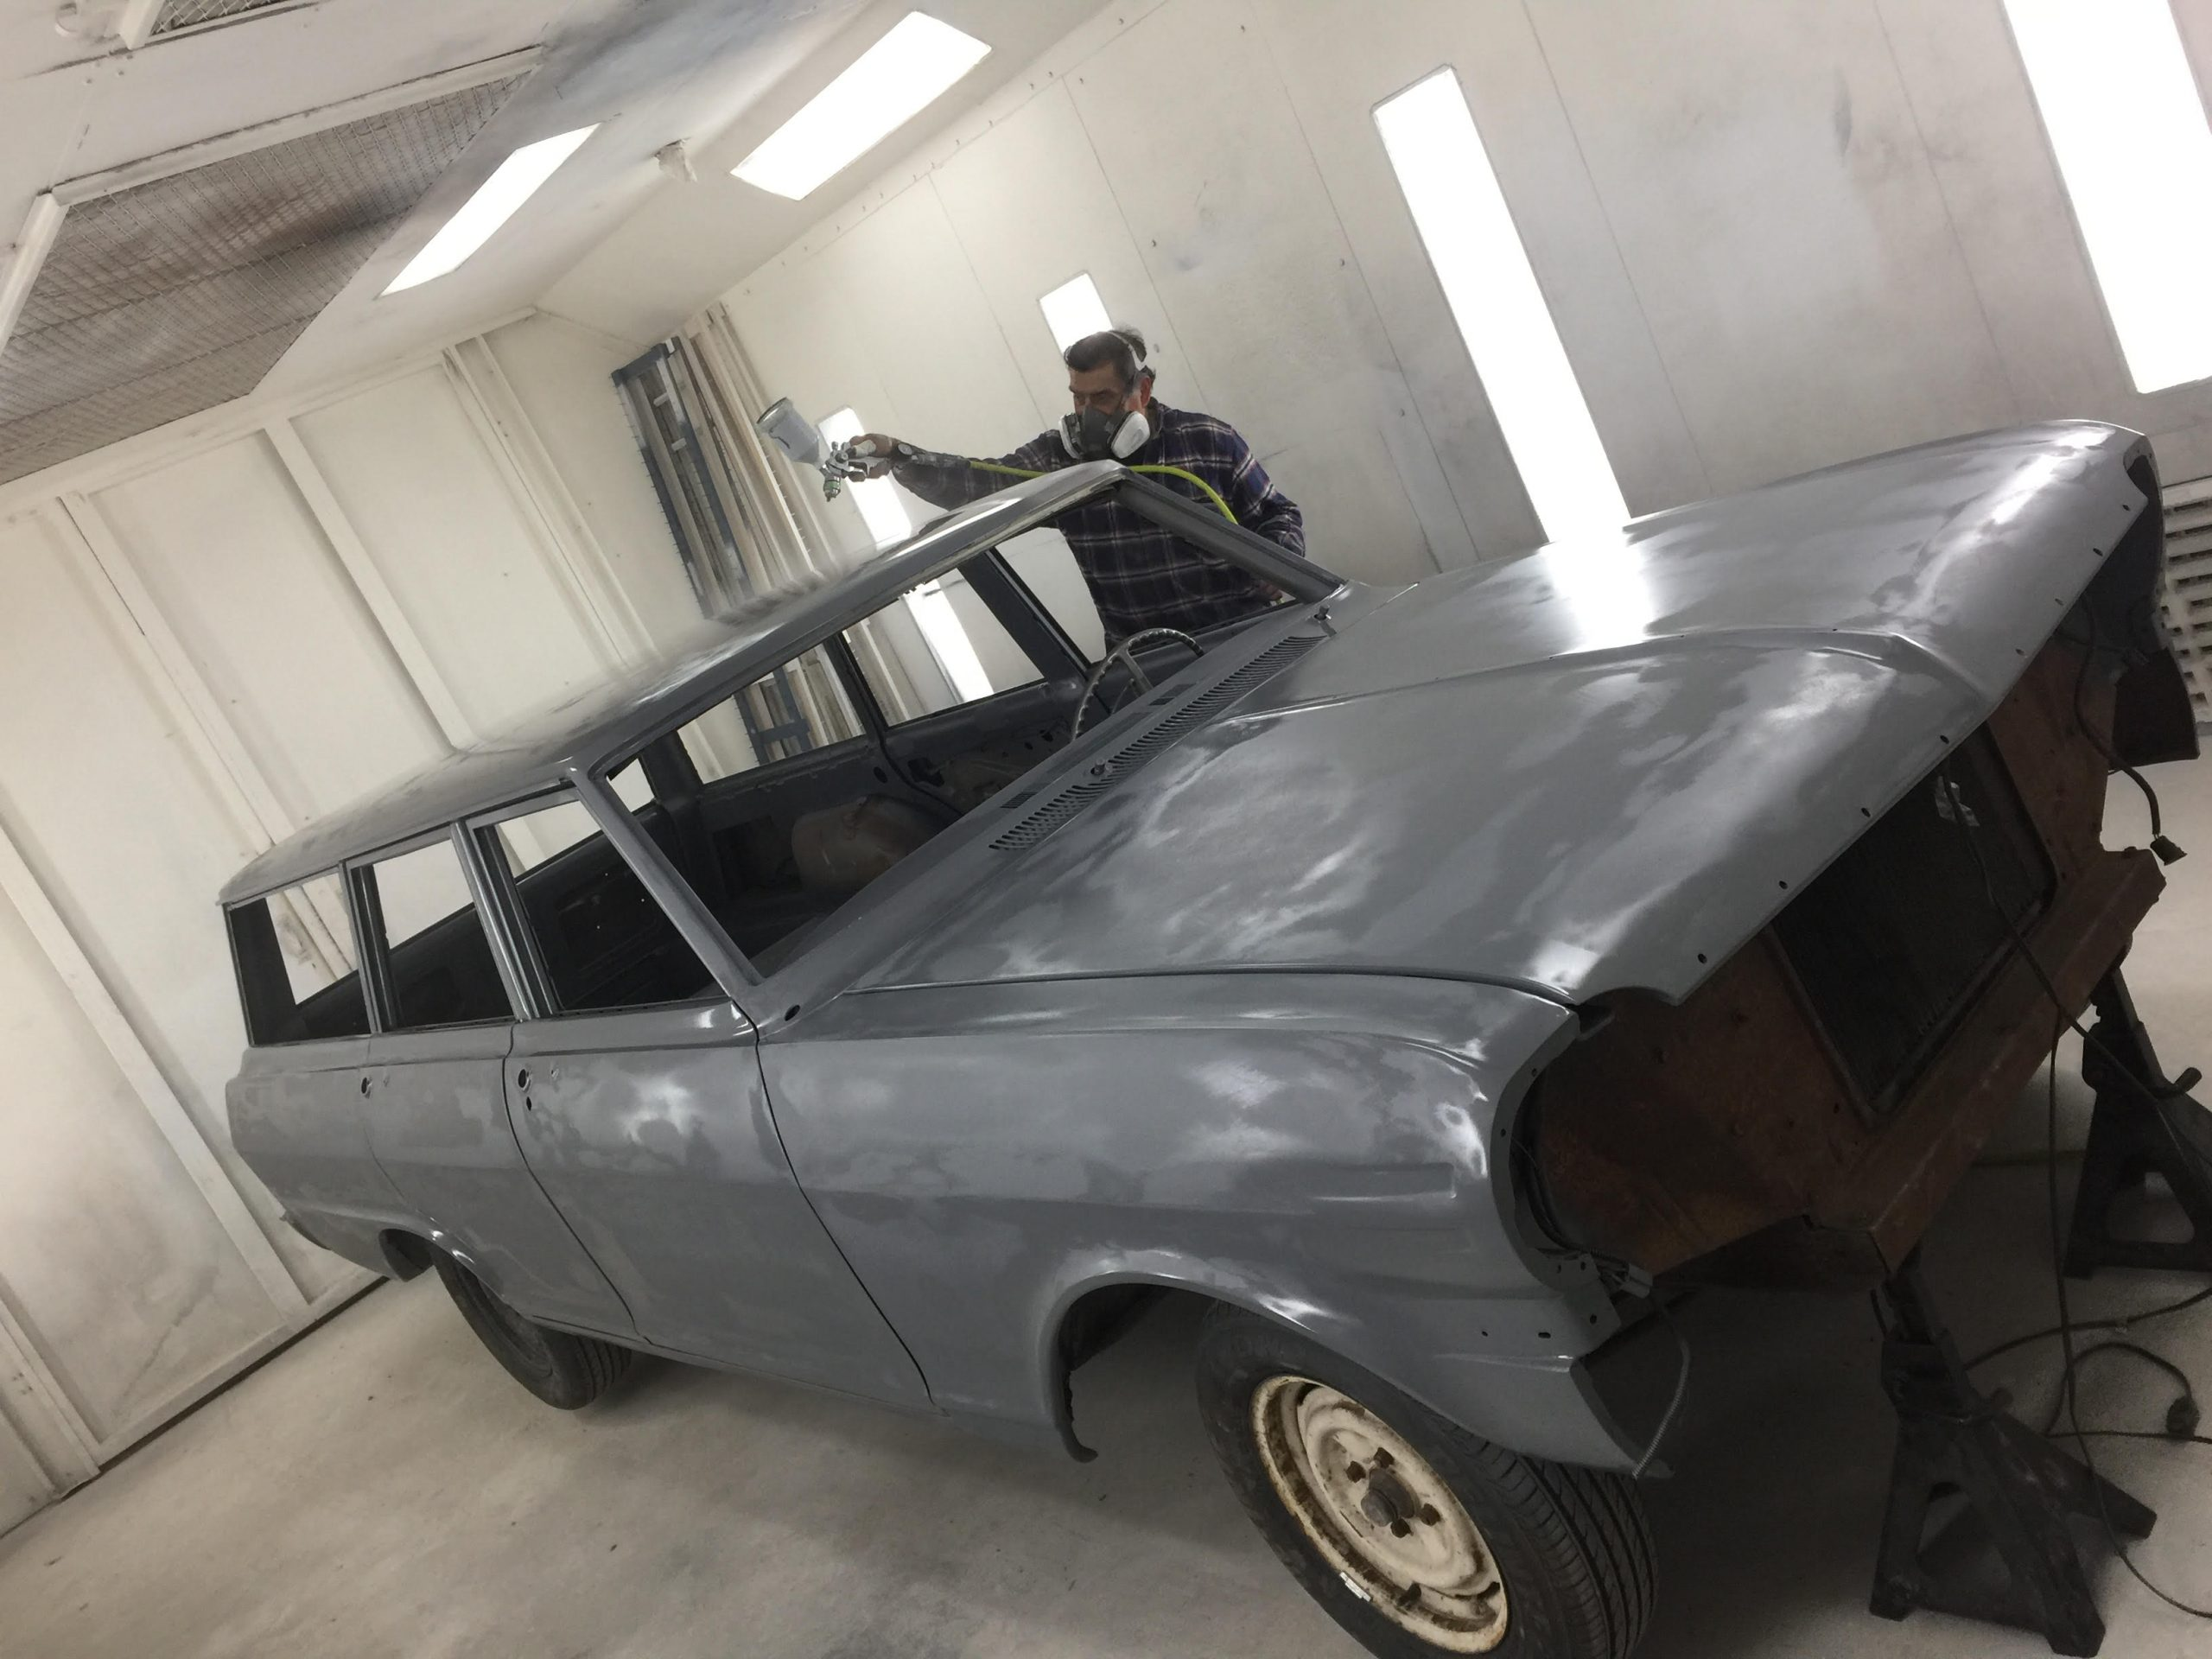 Sanding For Days! The Norcal Garage Family Time 1963 Chevrolet Chevy II Station Wagon Is Coming Along!